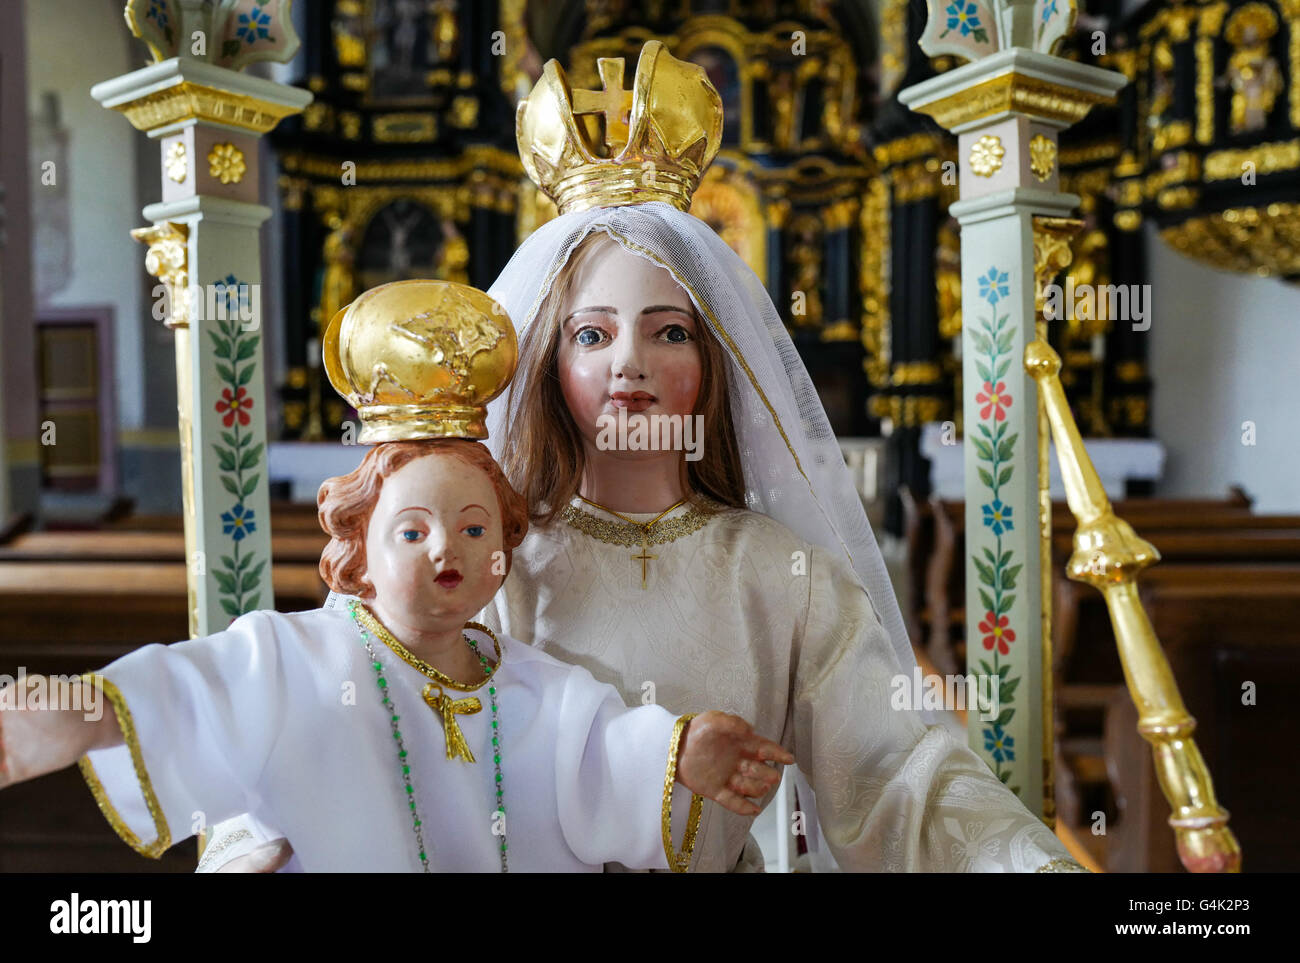 A painted statue of Virgin Mary and baby jesus in the Church at Olimje Monastery, Slovenia - Stock Image